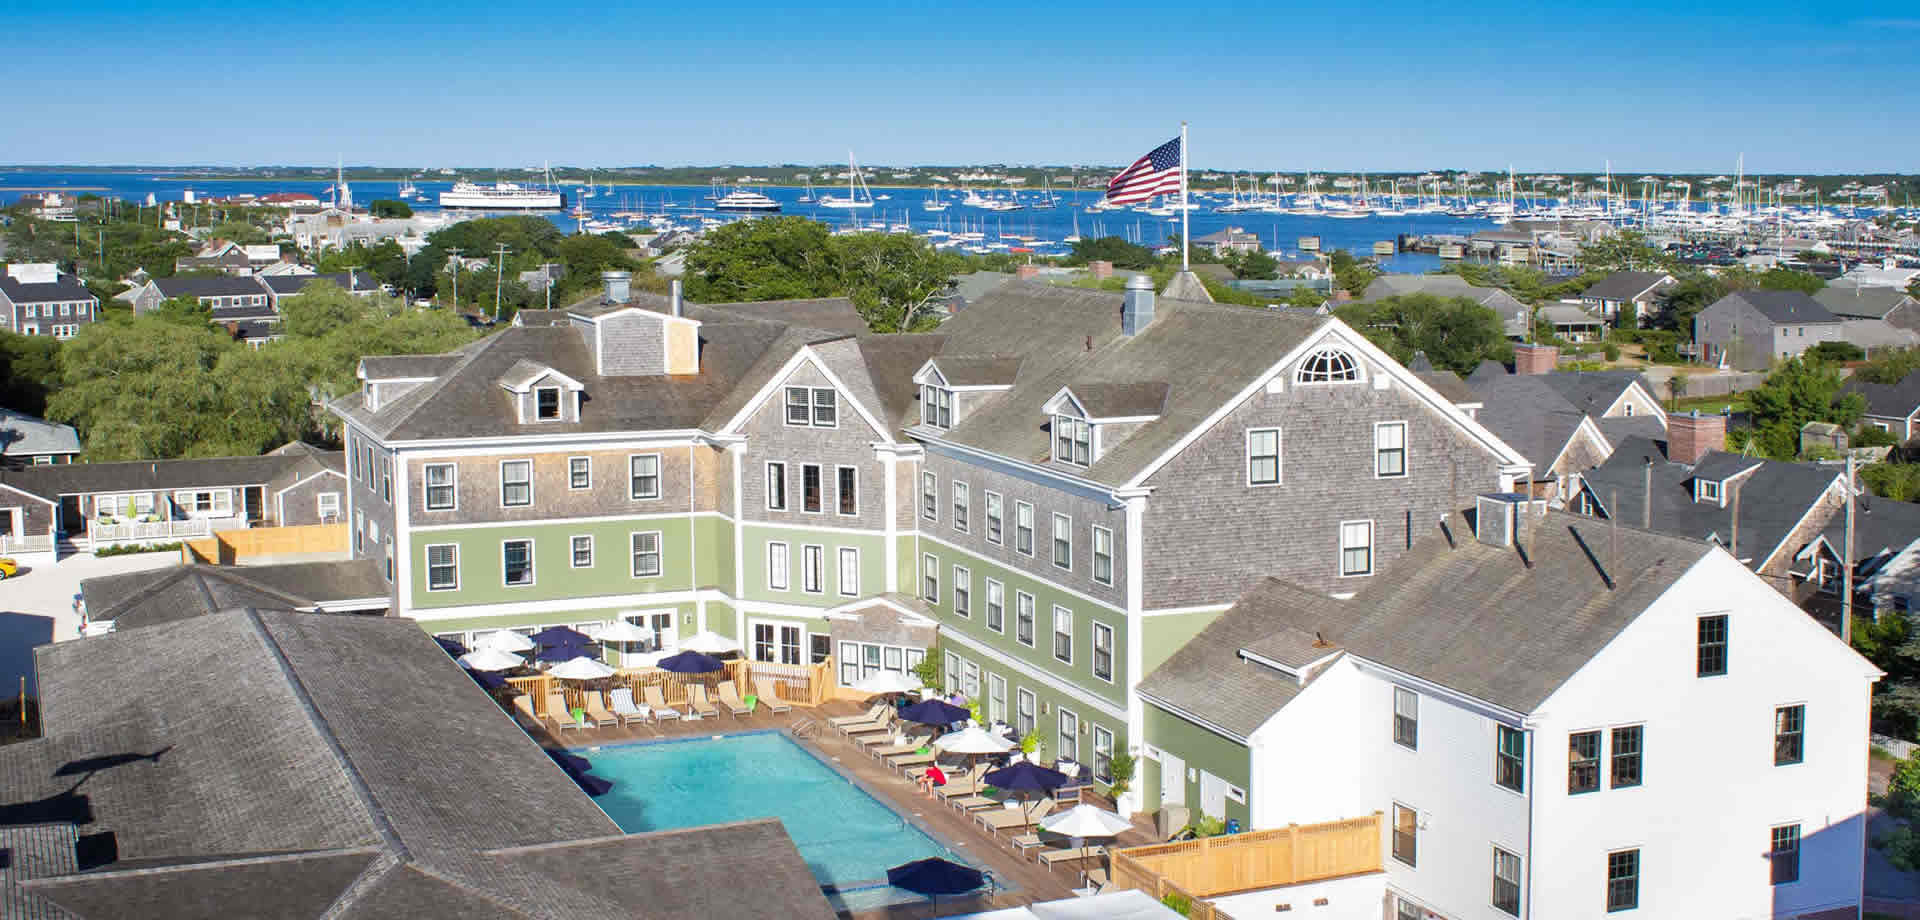 The-Nantucket-Hotel-Aerial-New-Large